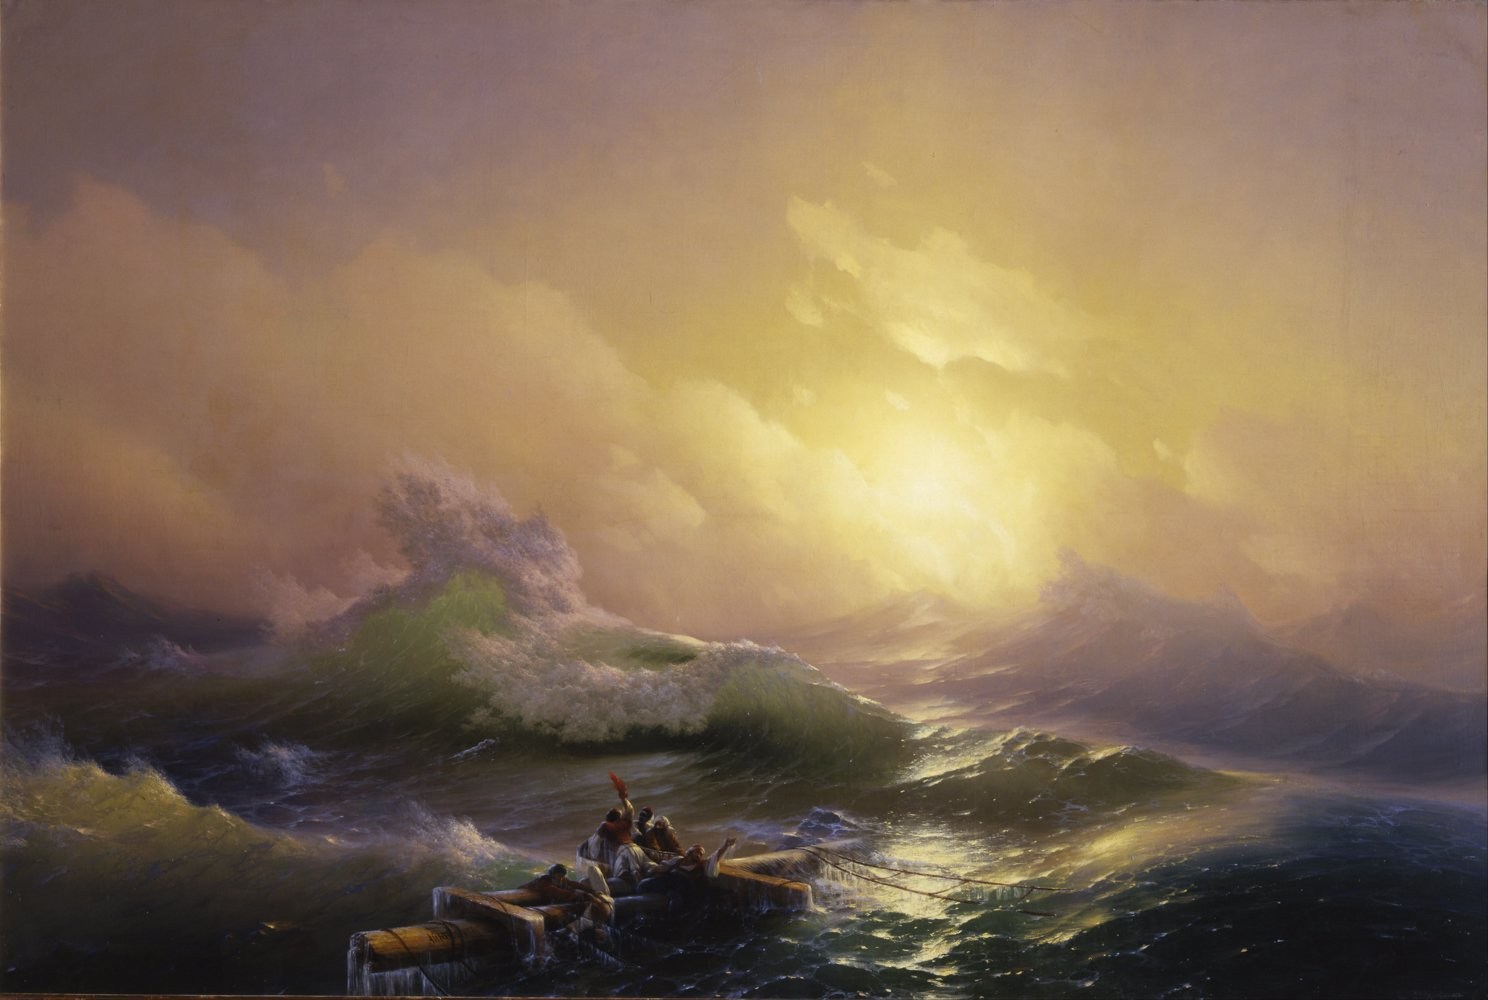 Hovhannes Aivazovsky - The Ninth Wave Purple hue - Large - Matte - Black Frame Vintage Wall Art Poster Picture Giclee Artwork Modern Contemporary & Fine Art Print